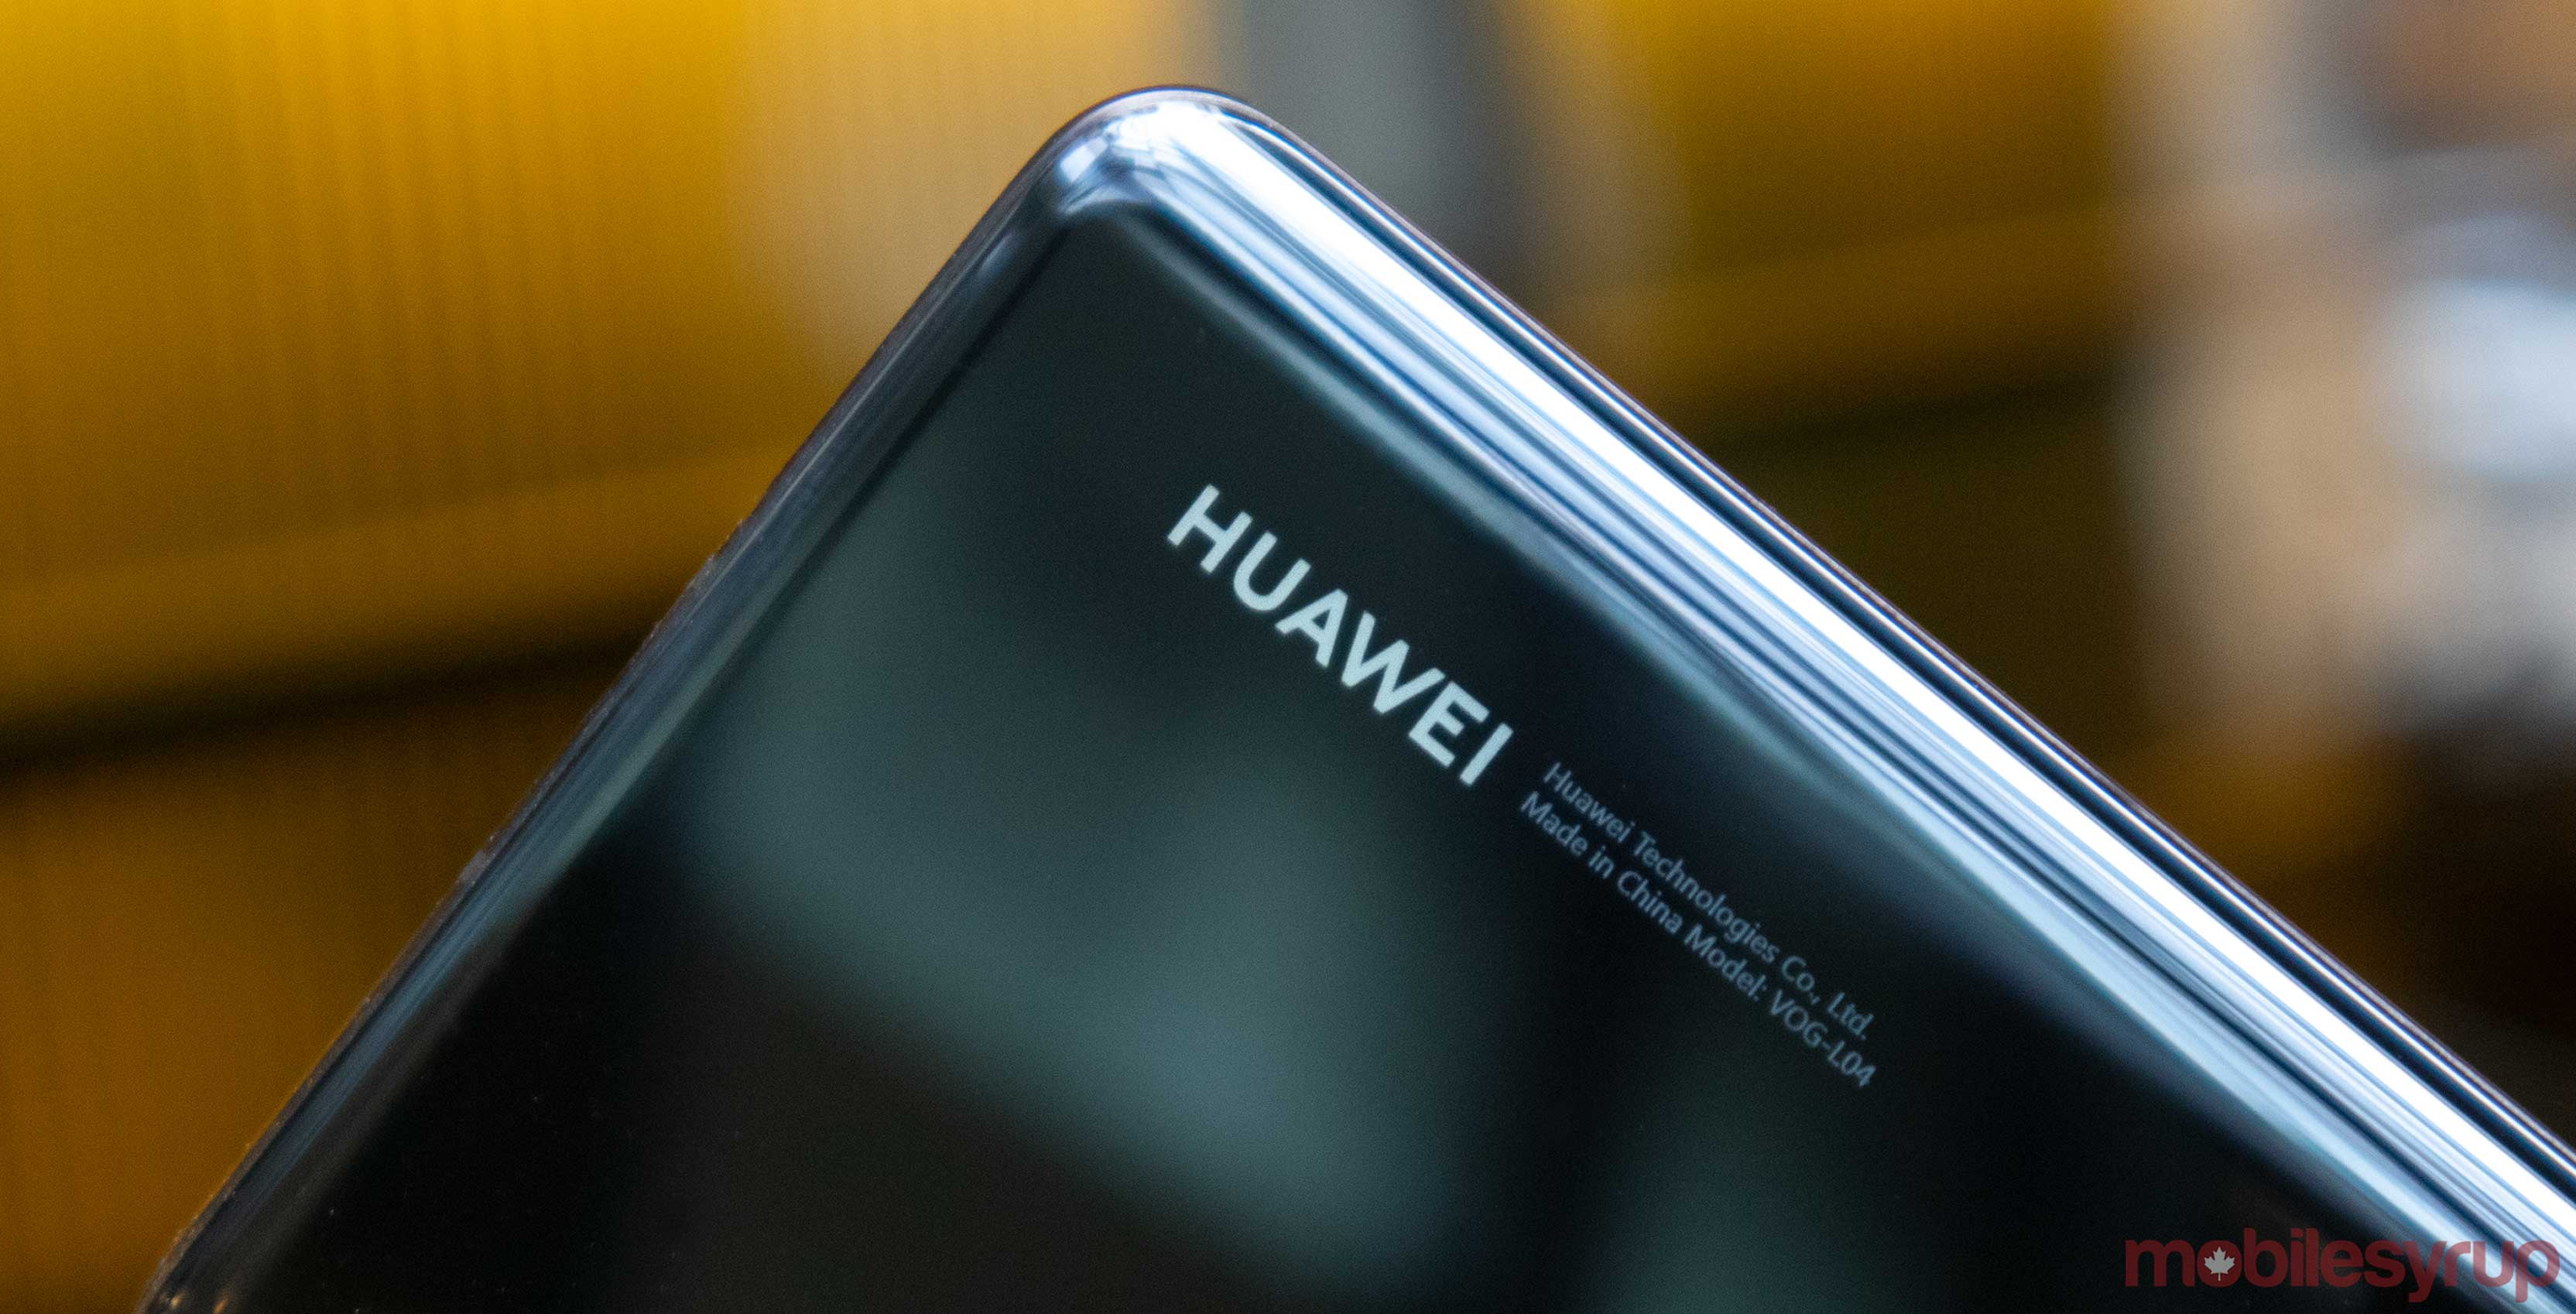 Are you still interested in buying a Huawei smartphone in Canada?